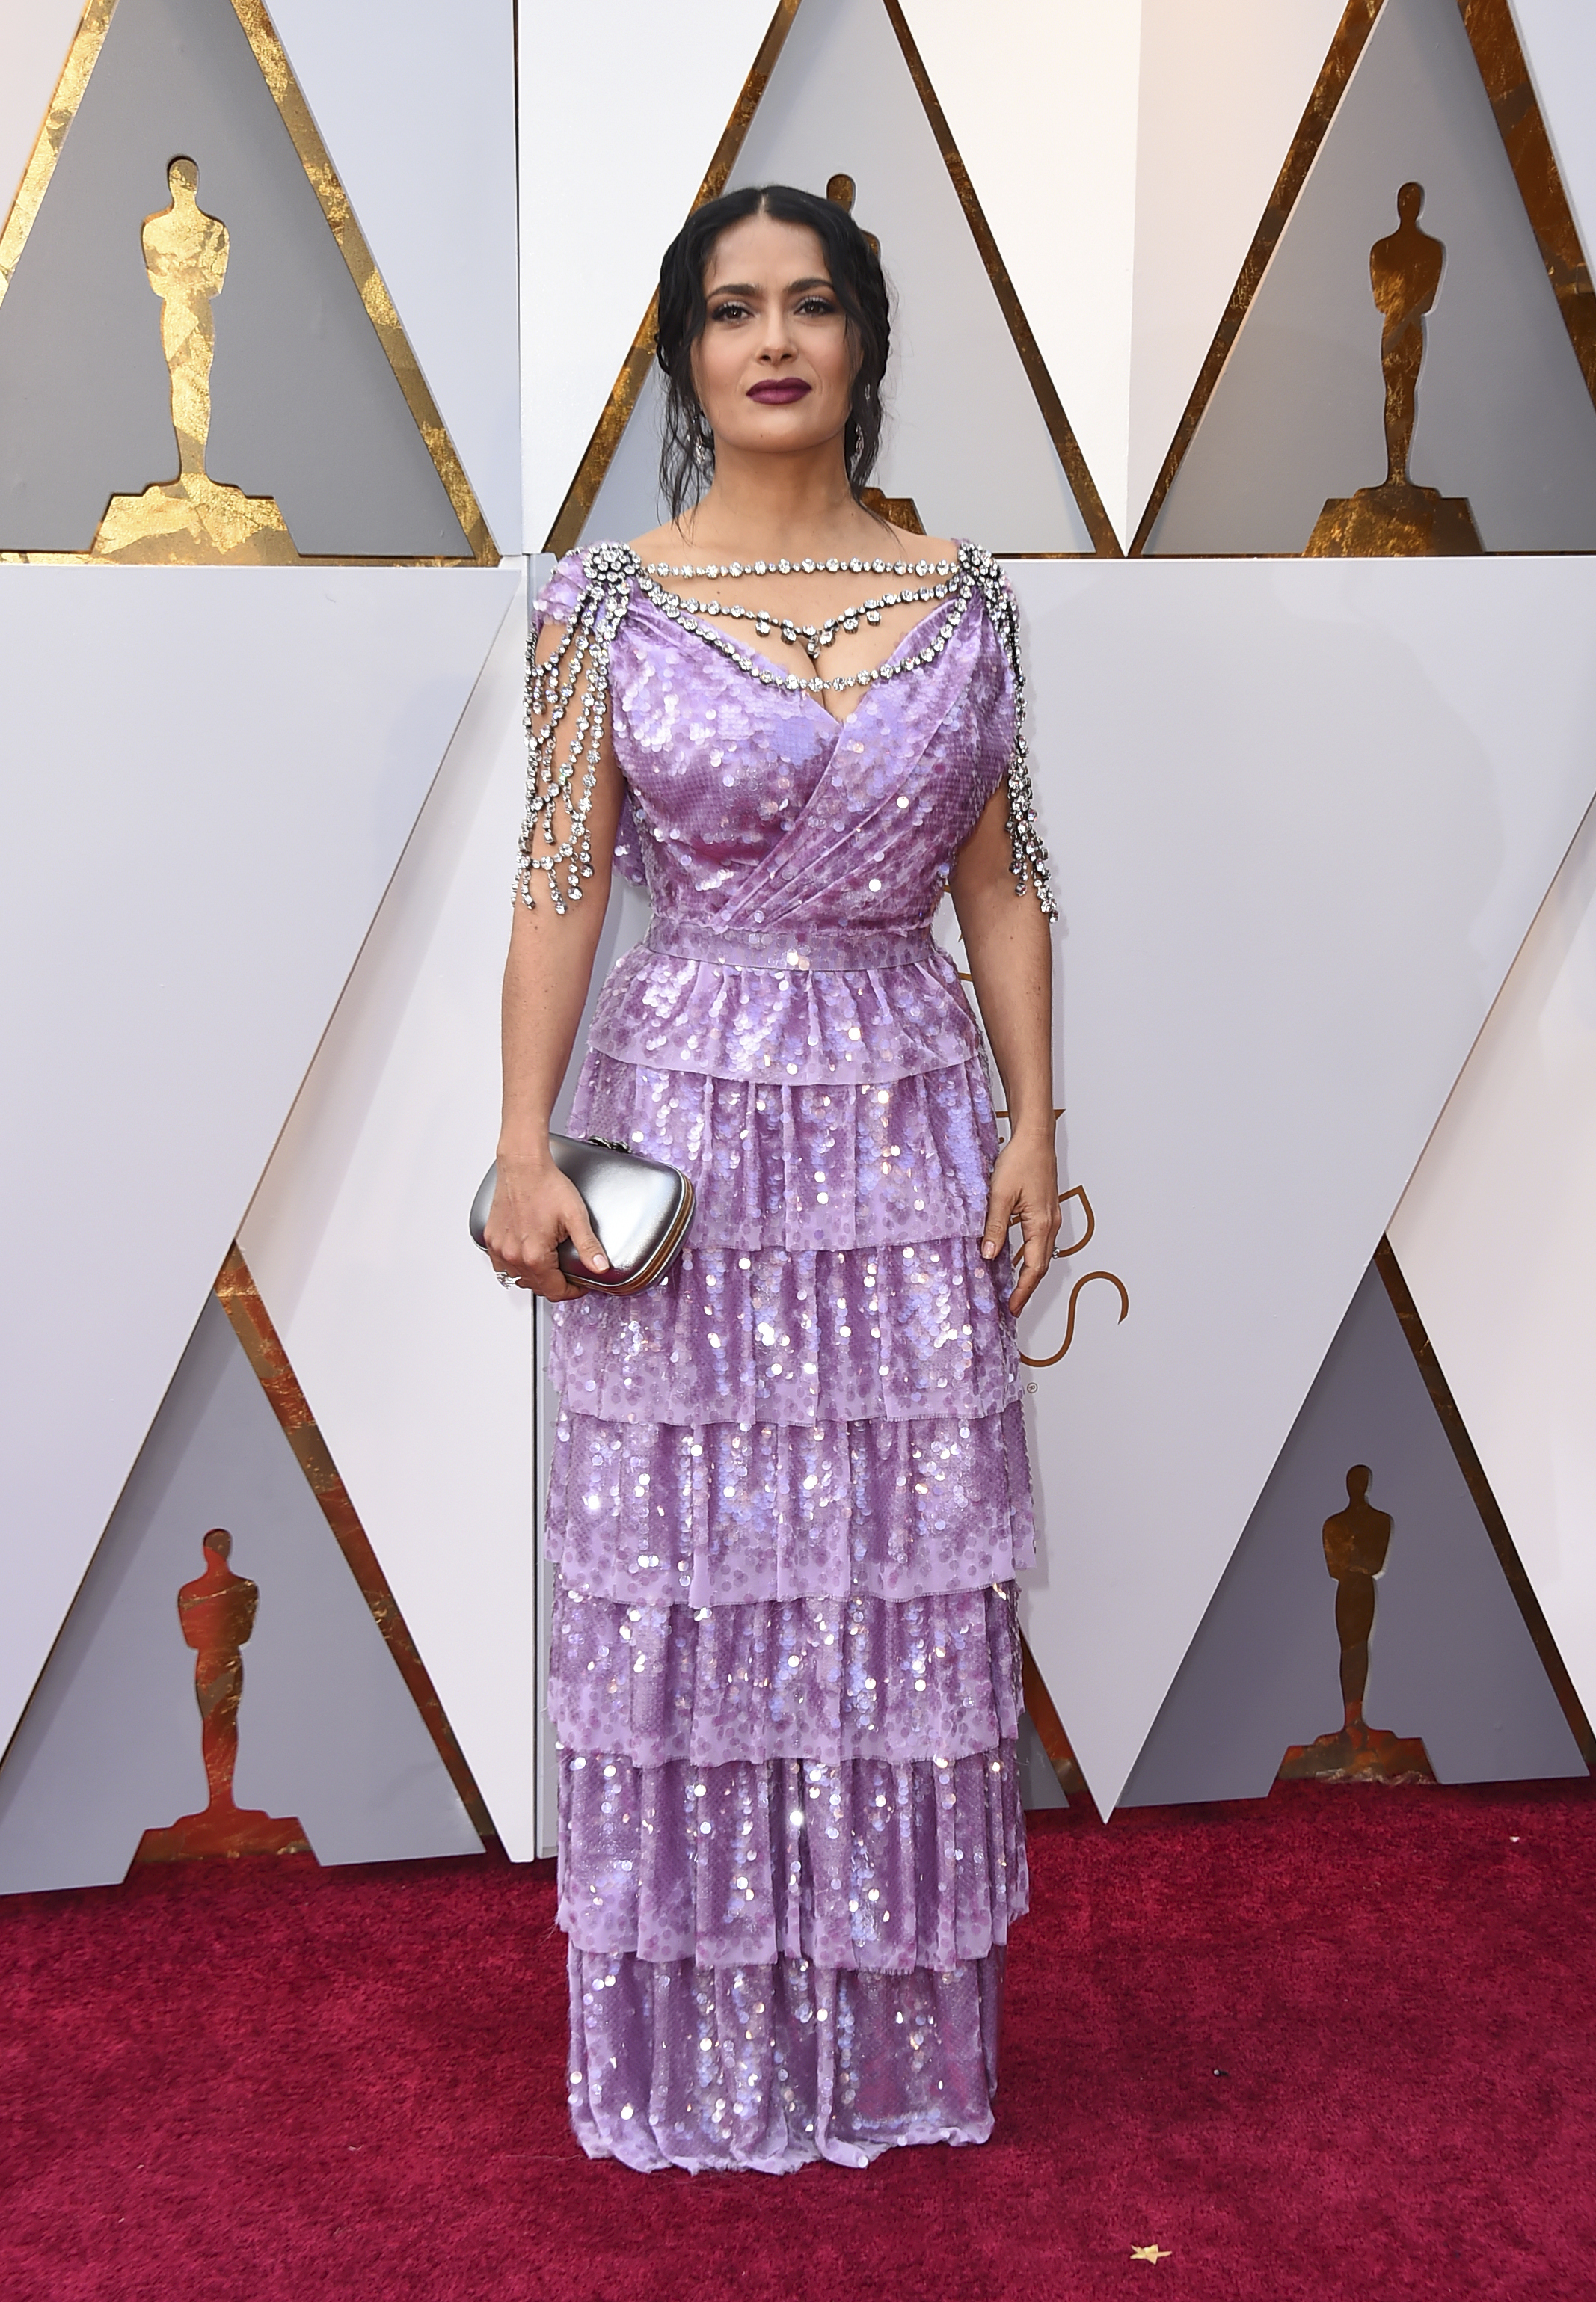 <div class='meta'><div class='origin-logo' data-origin='none'></div><span class='caption-text' data-credit='Jordan Strauss/Invision/AP'>Salma Hayek arrives at the Oscars on Sunday, March 4, 2018, at the Dolby Theatre in Los Angeles.</span></div>